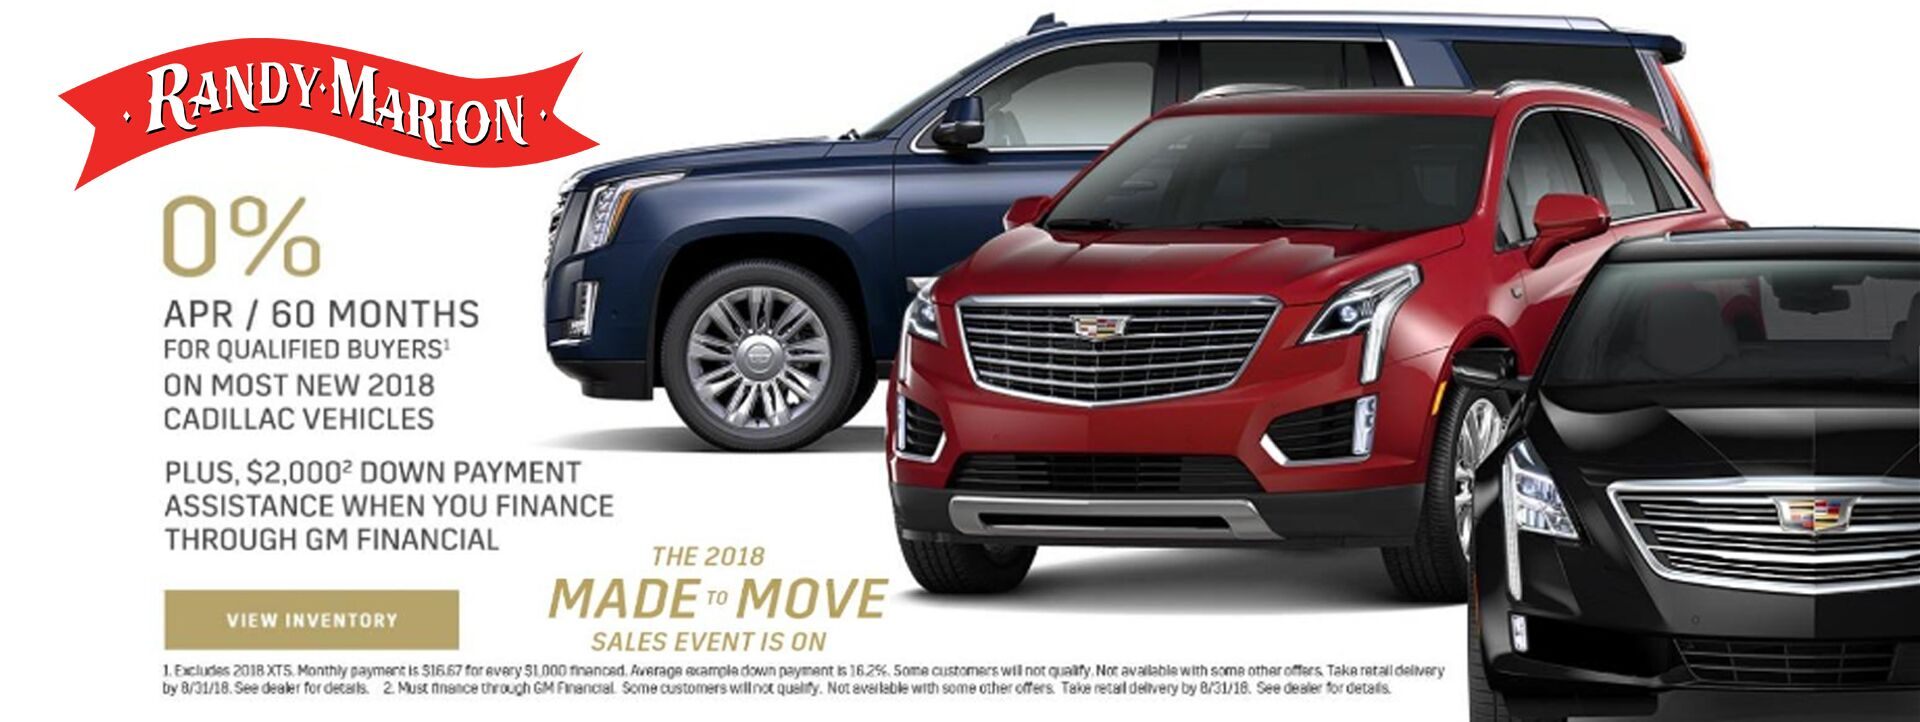 Dealership Mooresville NC | Used Cars Randy Marion Chevrolet Buick